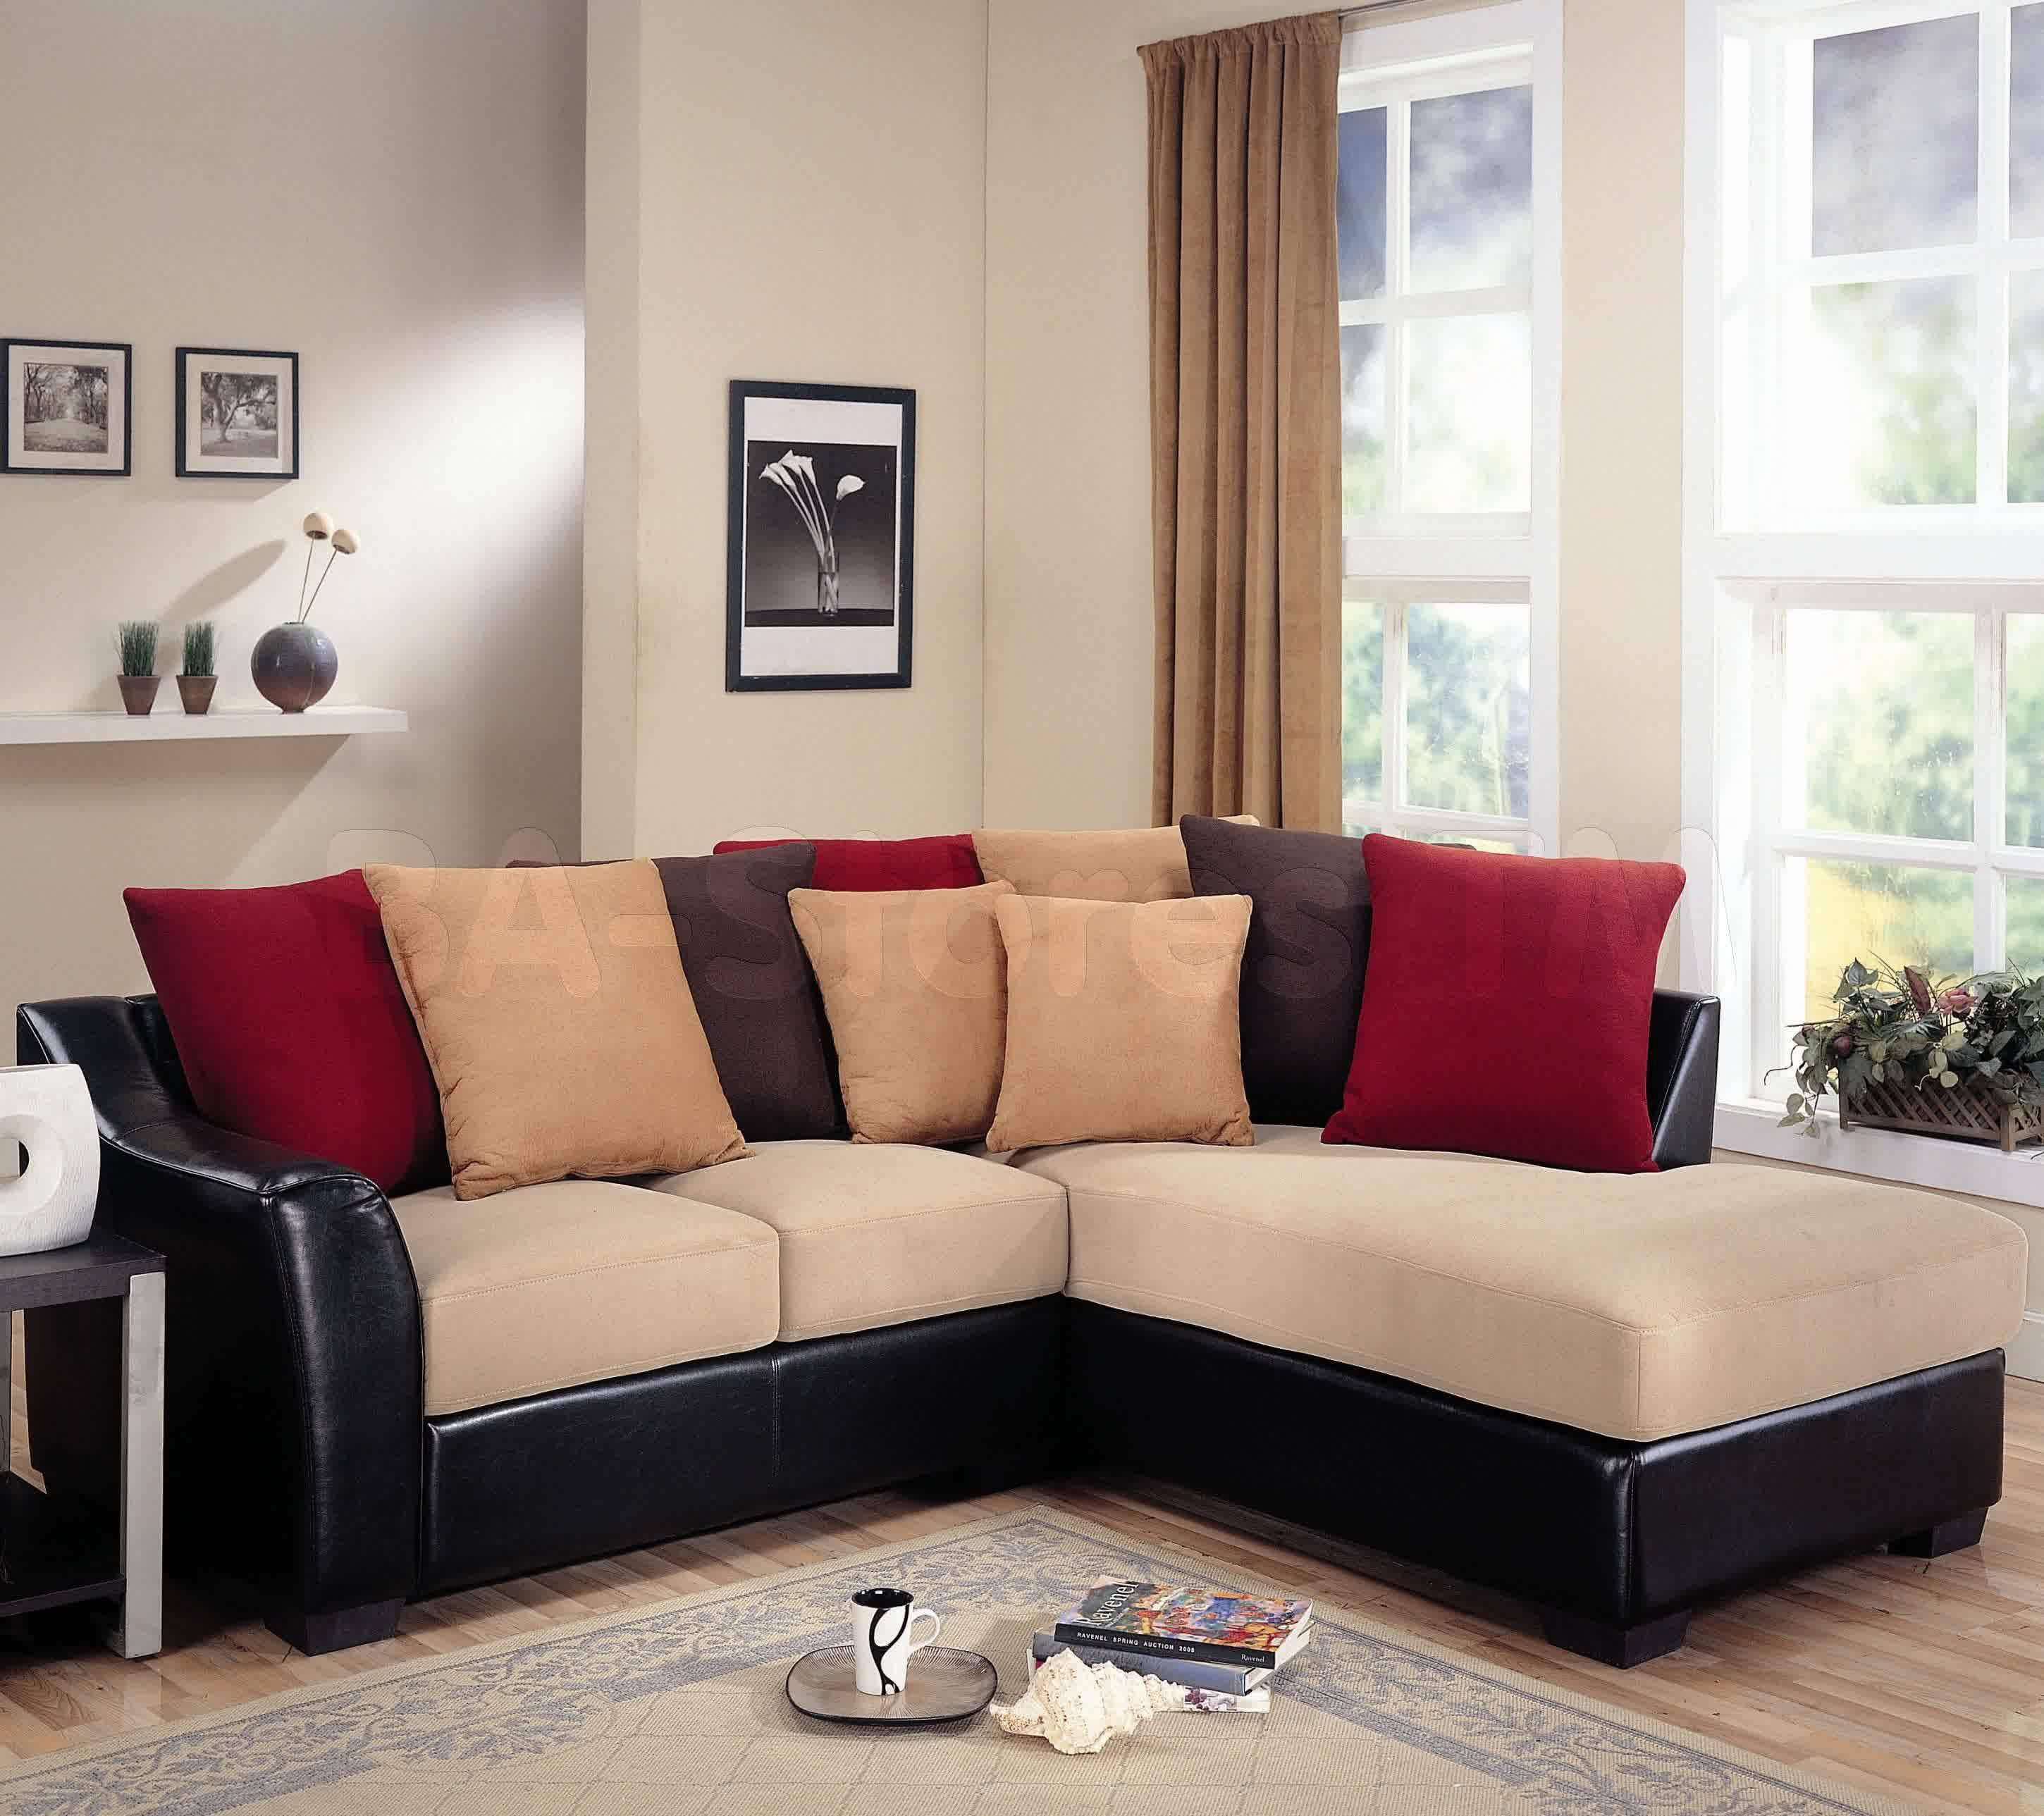 Furniture: Winsome Arcana Sectional Couches Cheap For Exqusite pertaining to Floor Couch Cushions (Image 23 of 30)